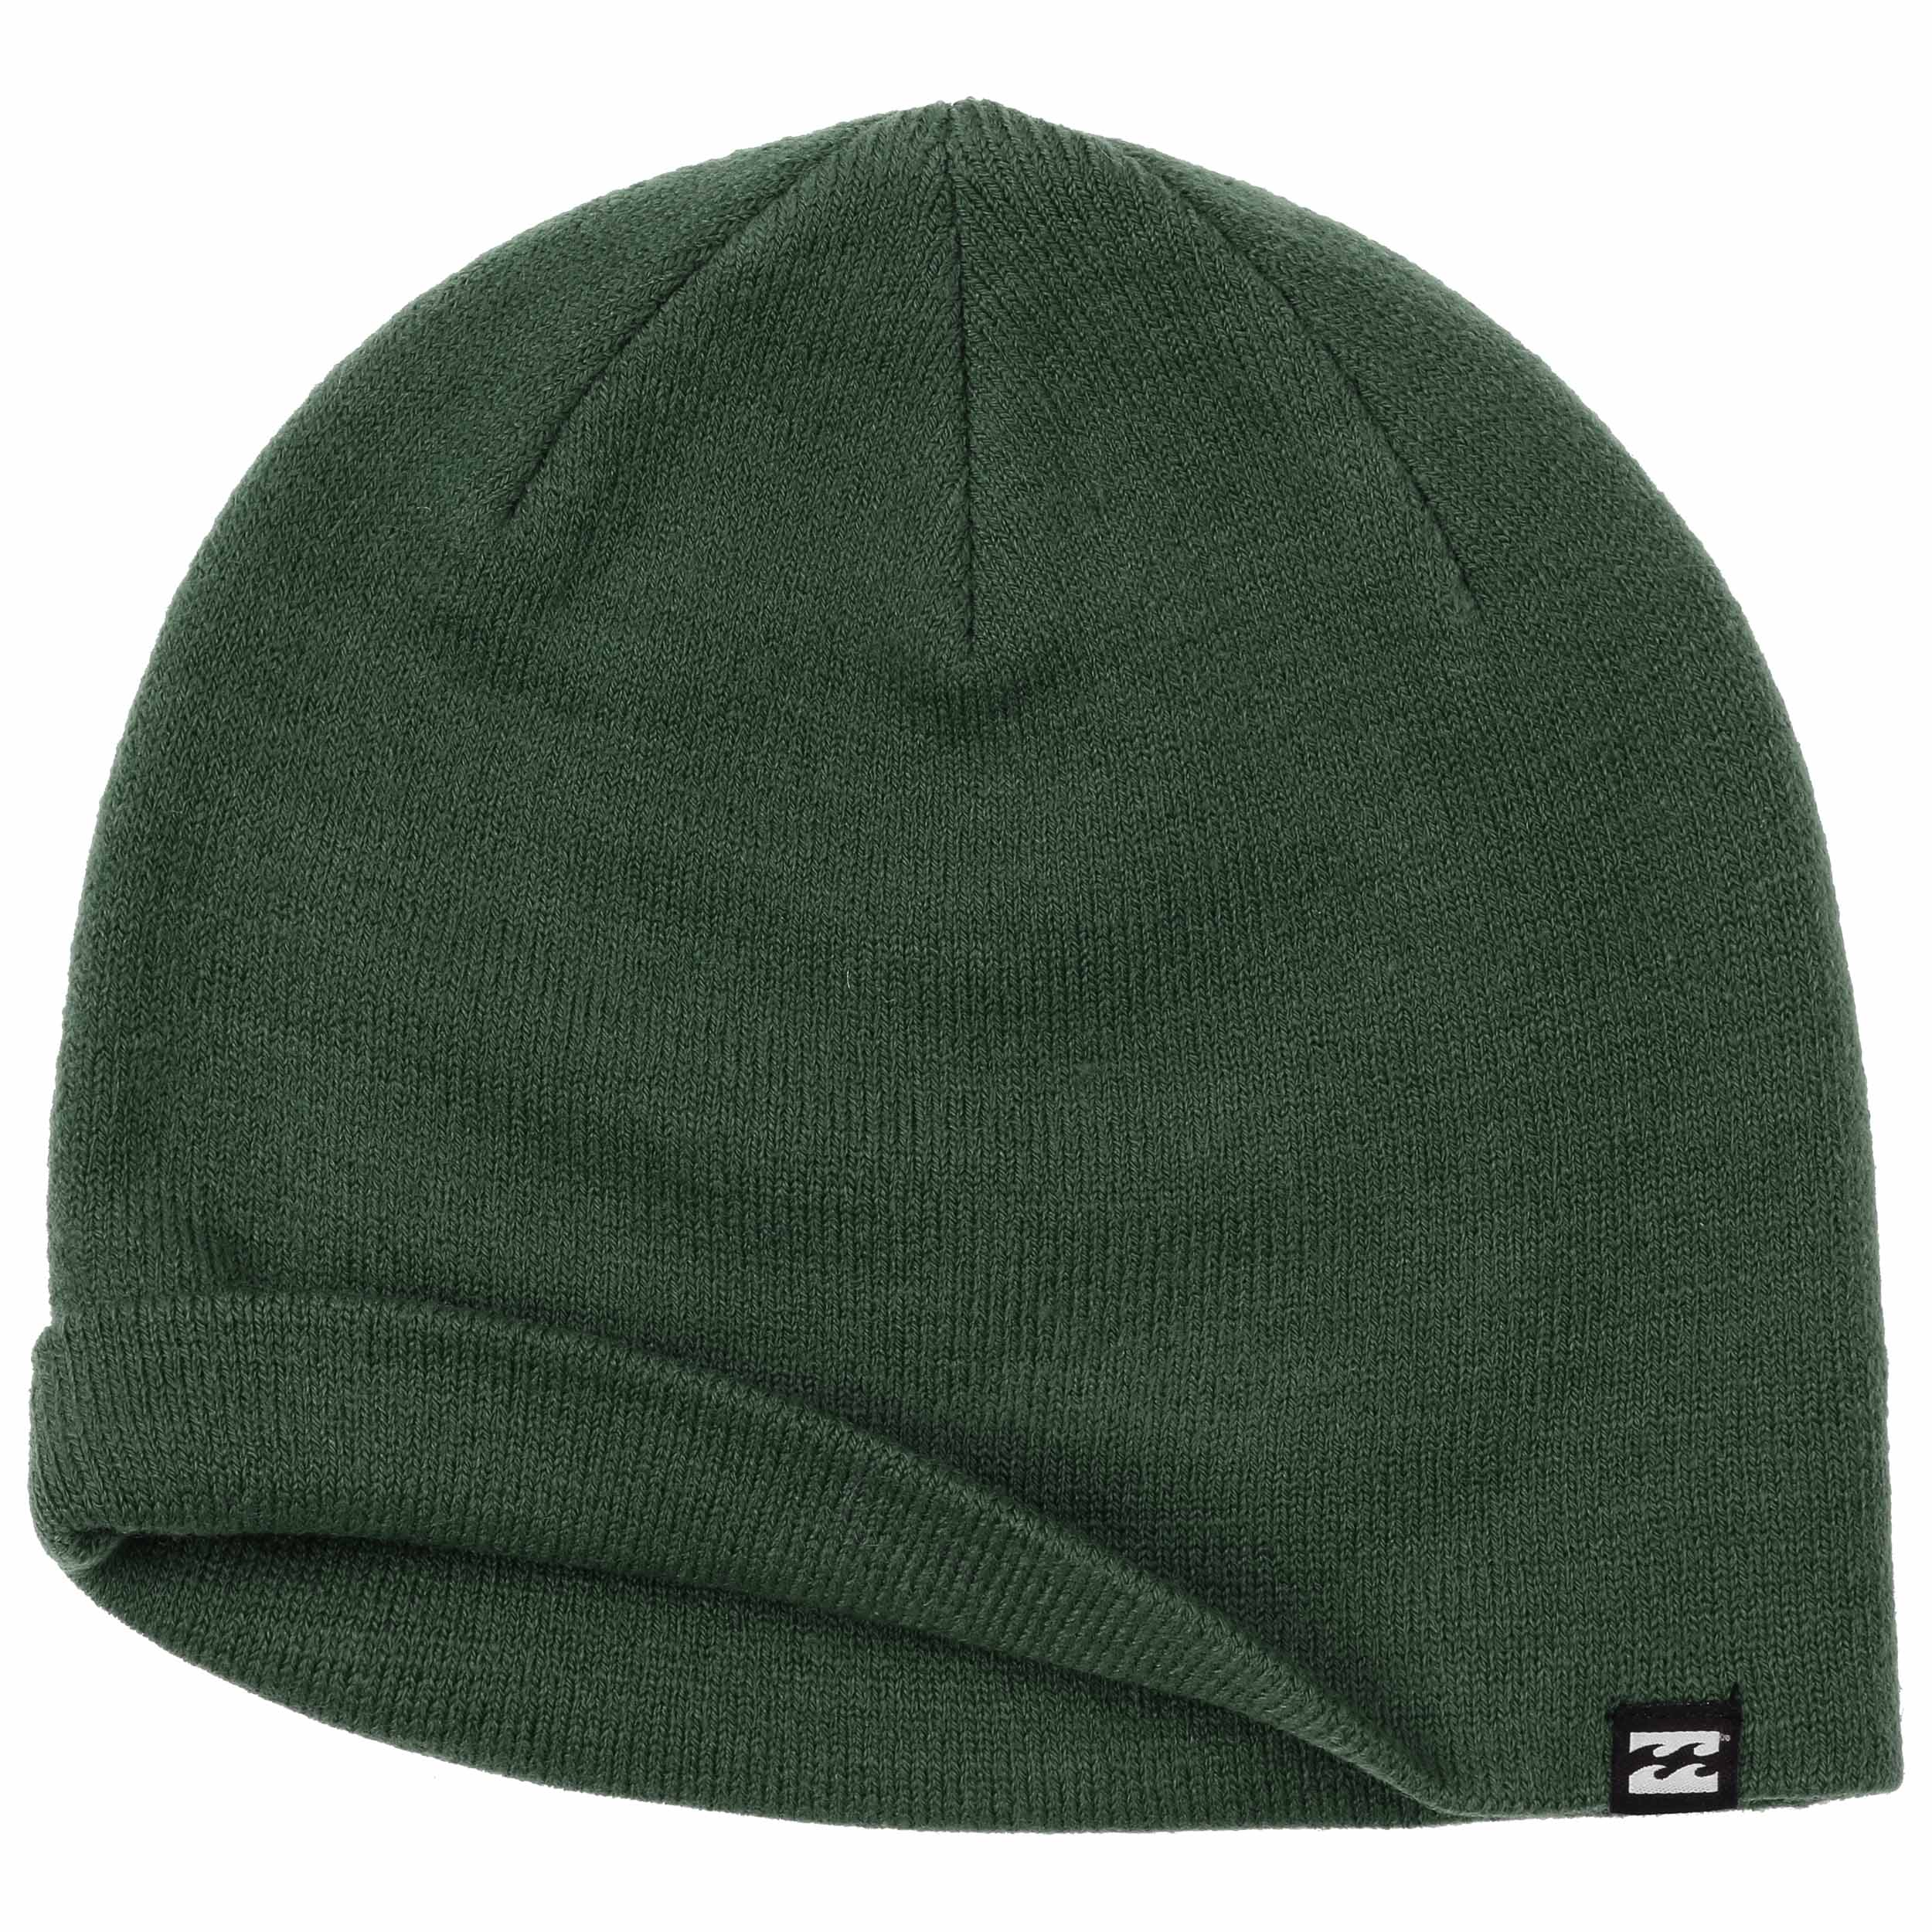 13900b4e746 ... All Day Beanie by Billabong - green 1 ...